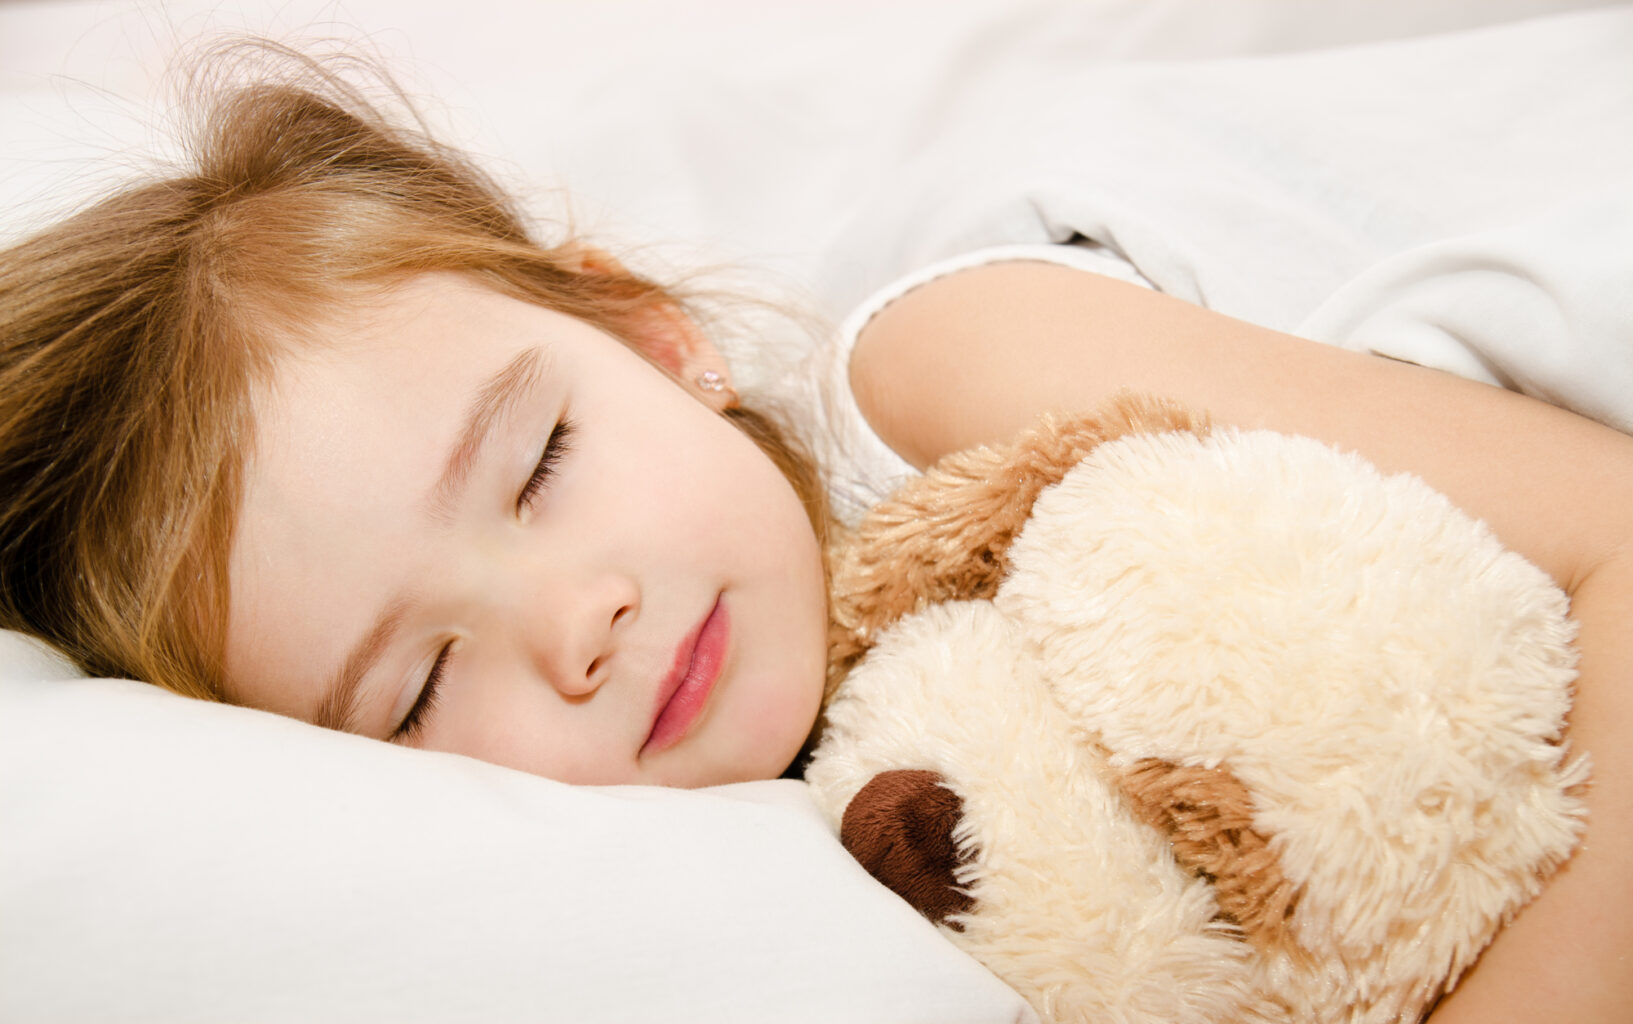 little girl asleep with stuffed puppy